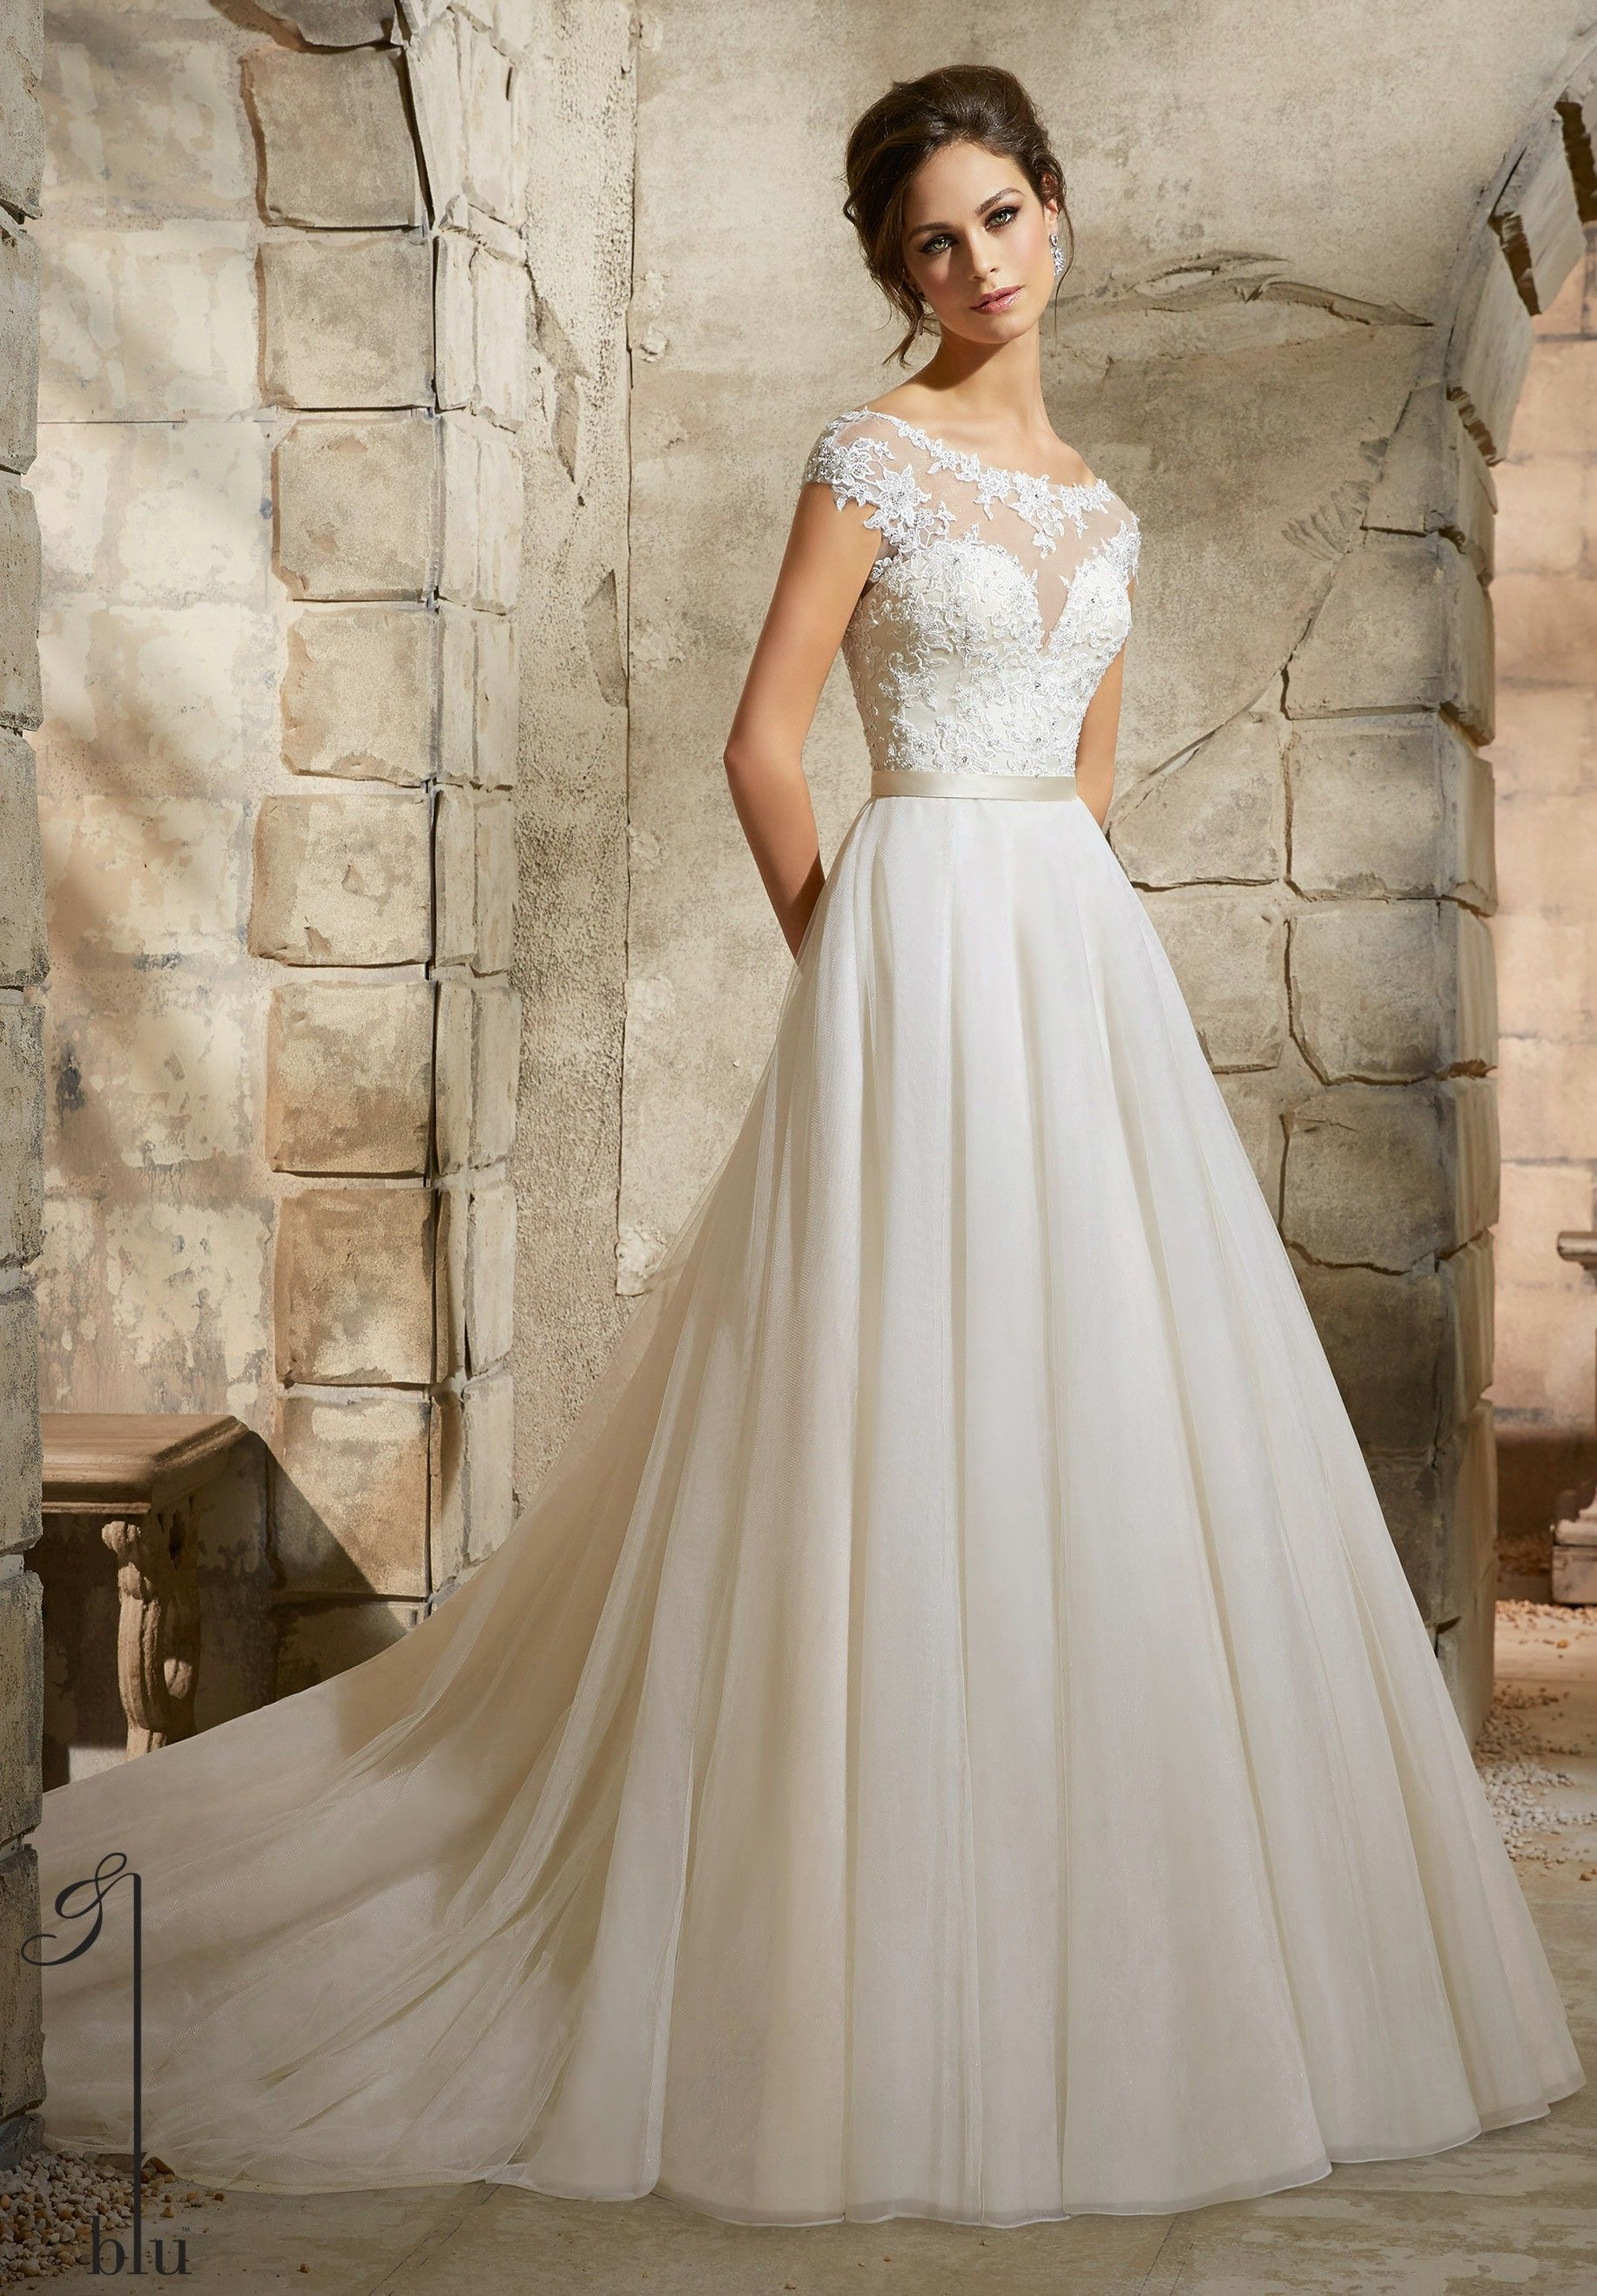 Mori lee blu wedding dresses style 5362 5362 79900 blu bridal by mori lee 5362 blu bridal collection by mori lee elegant xpressions sioux falls south dakota sherri hill dresses allure wedding gowns best ombrellifo Images